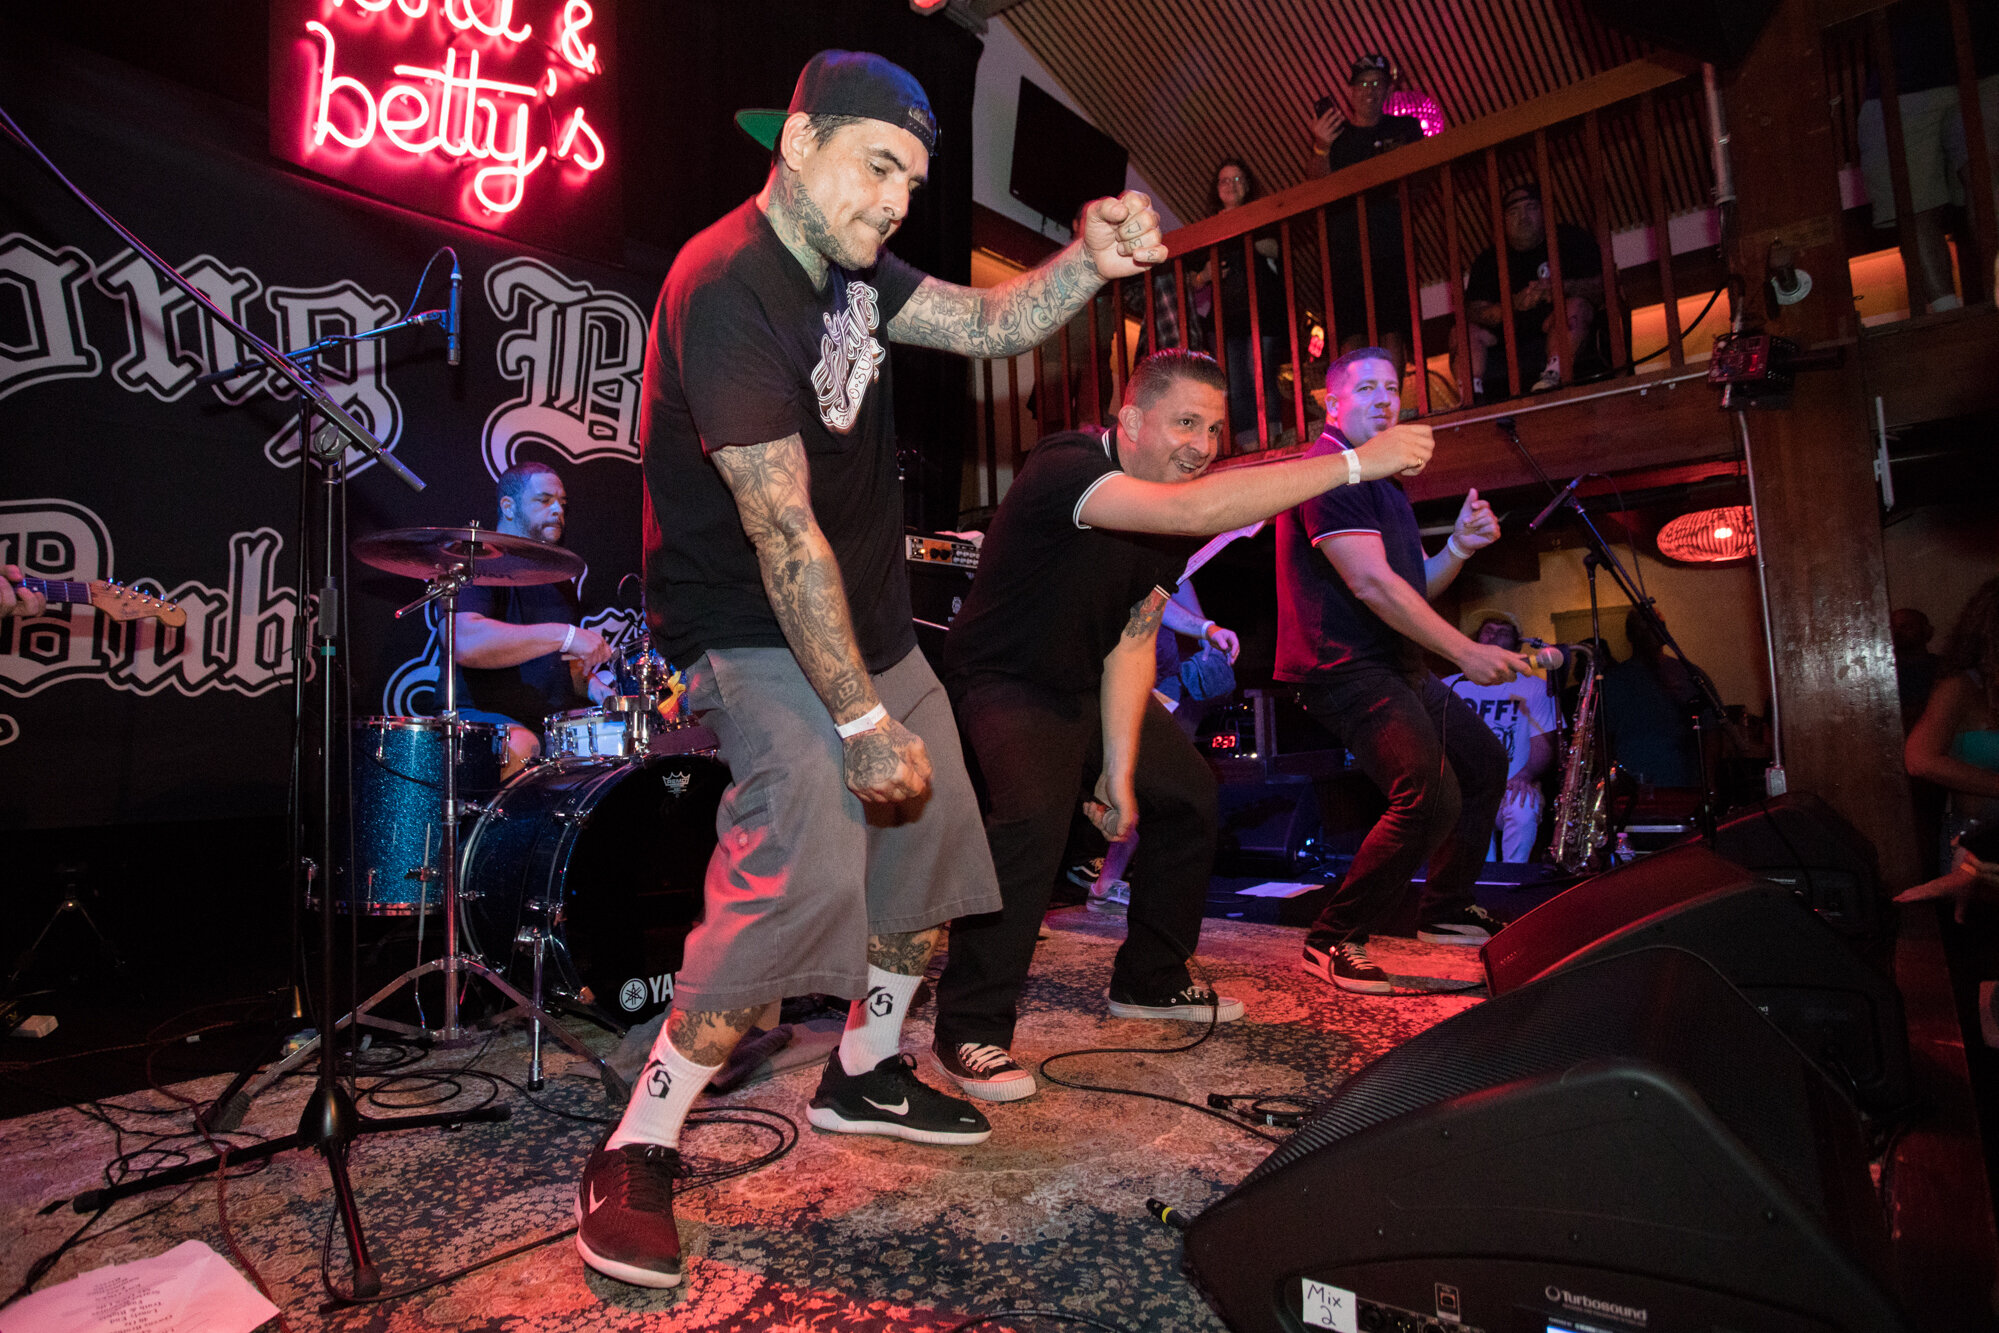 Opie Ortiz of the Long Beach Dub All Stars joins the Aggrolites on stage at Bird & Betty's. Photo: Hepp.